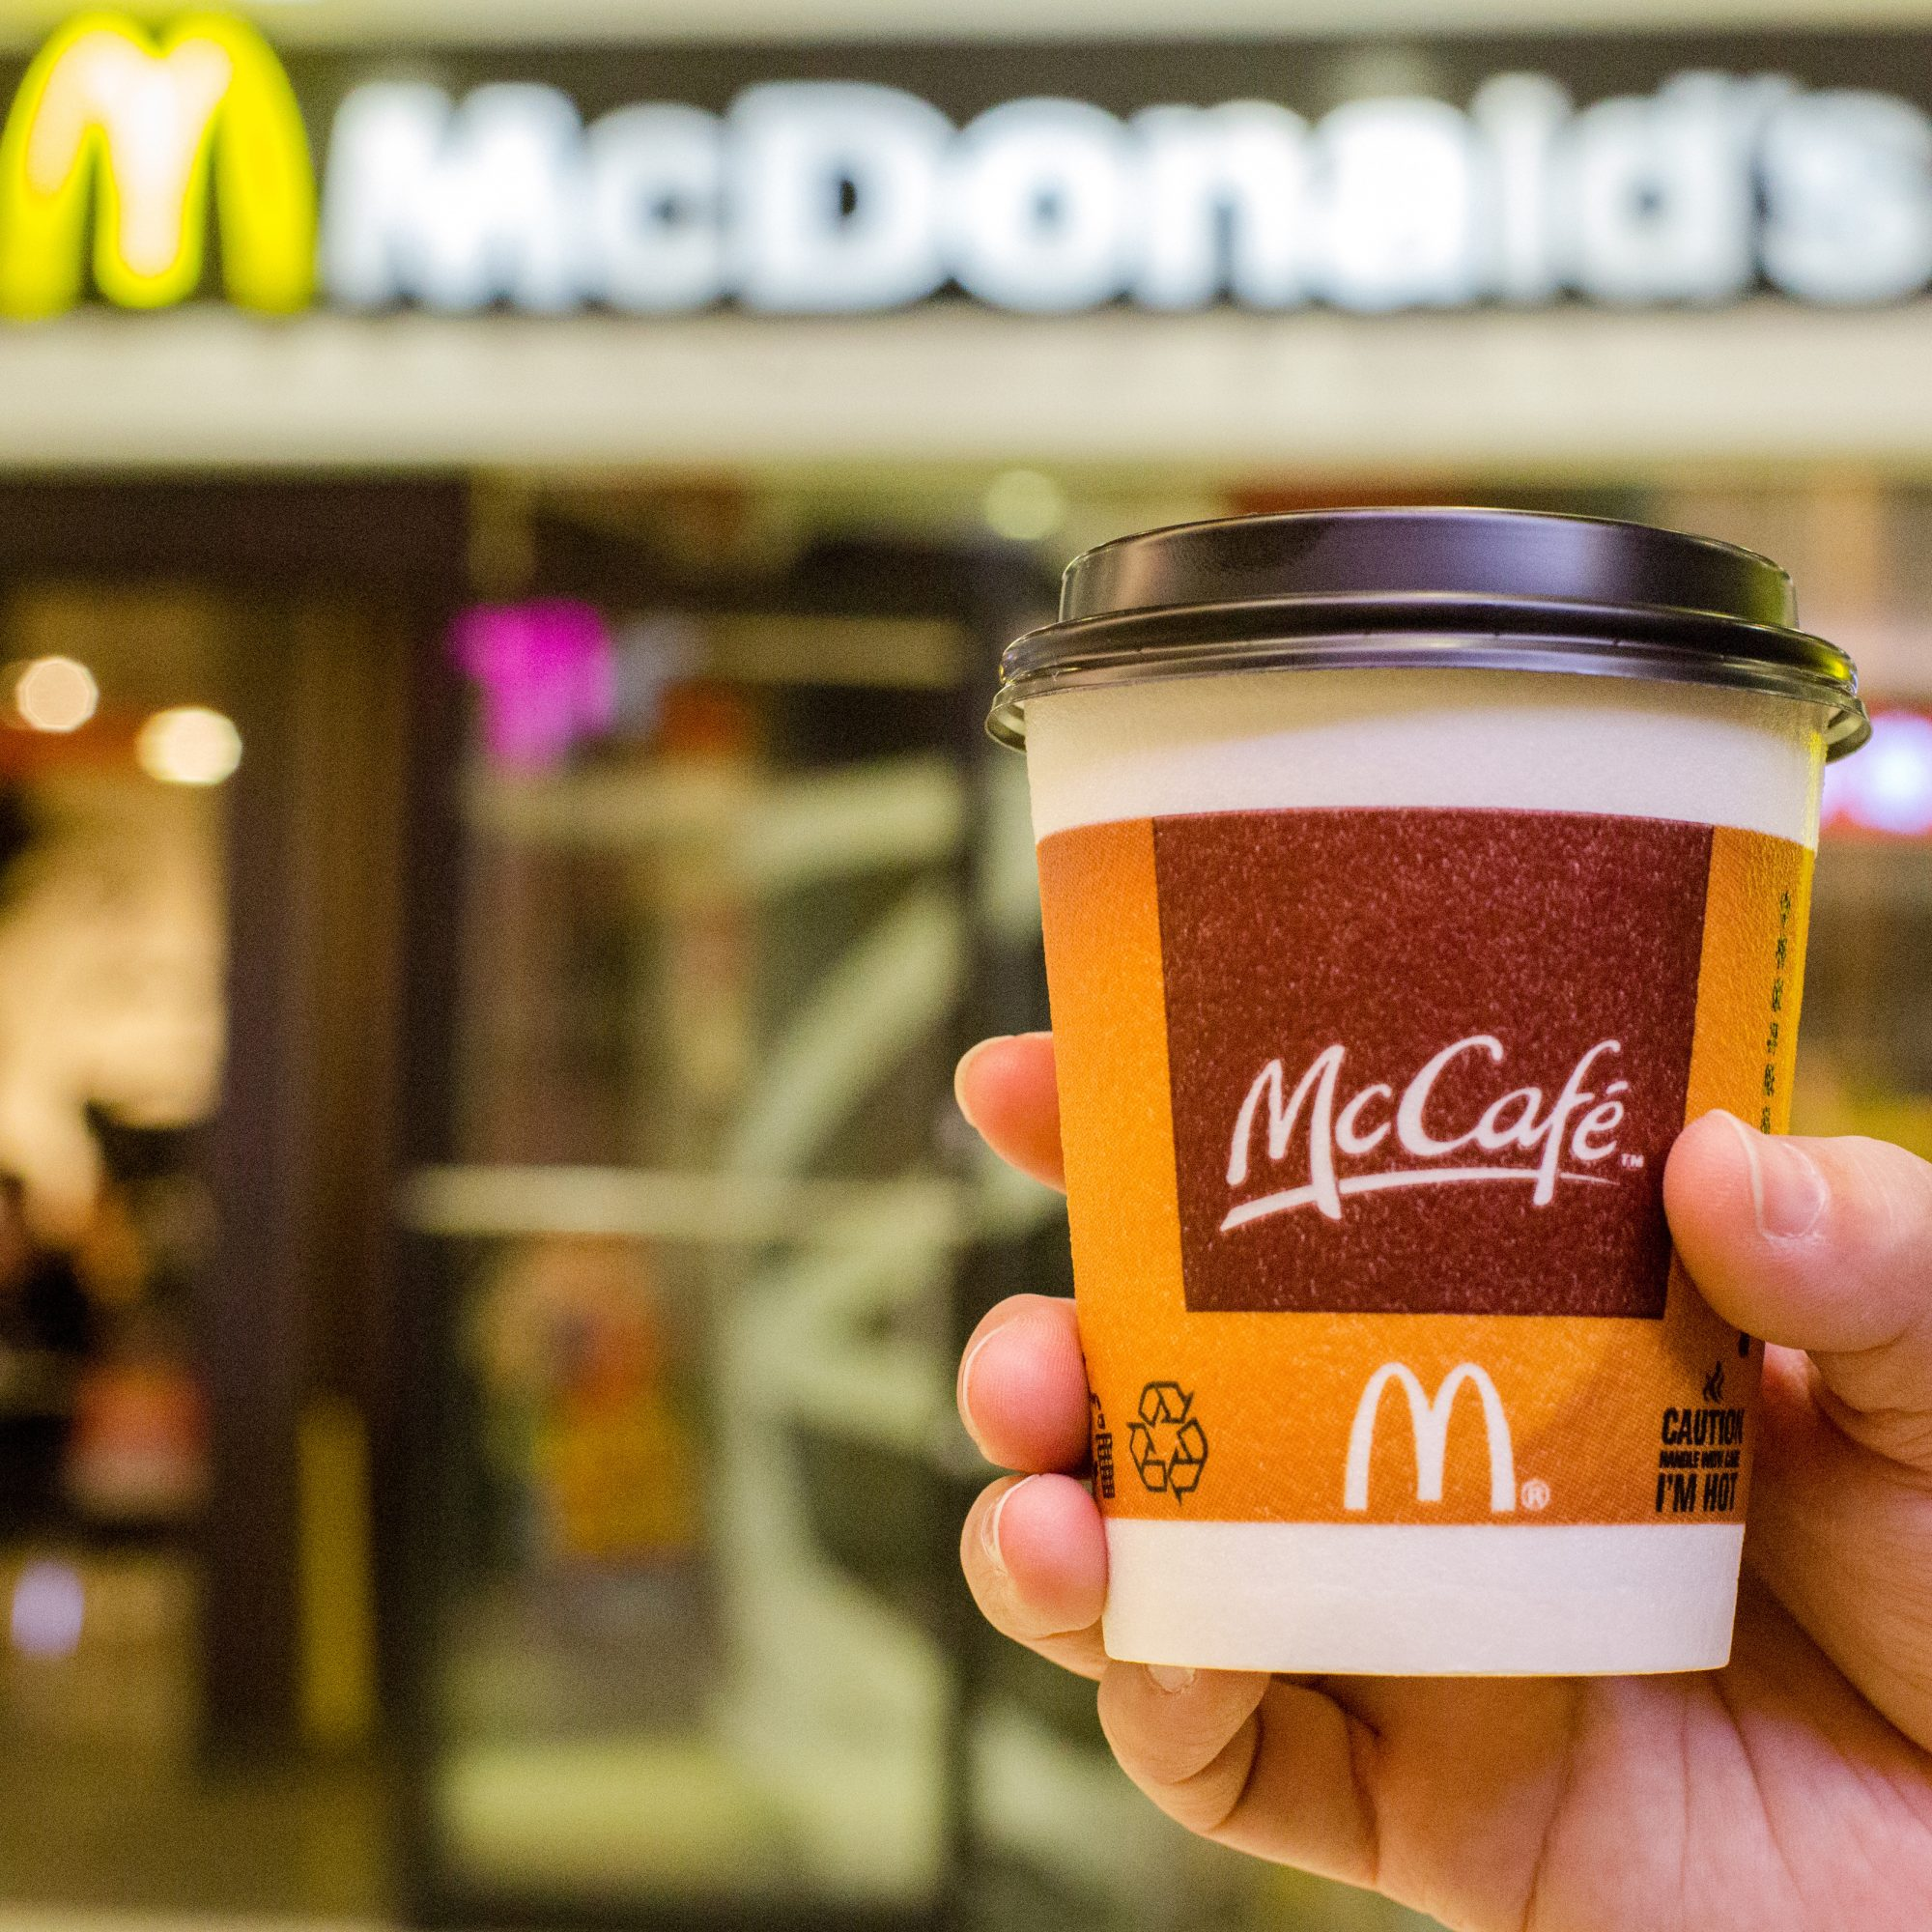 A cup of McCafe coffee